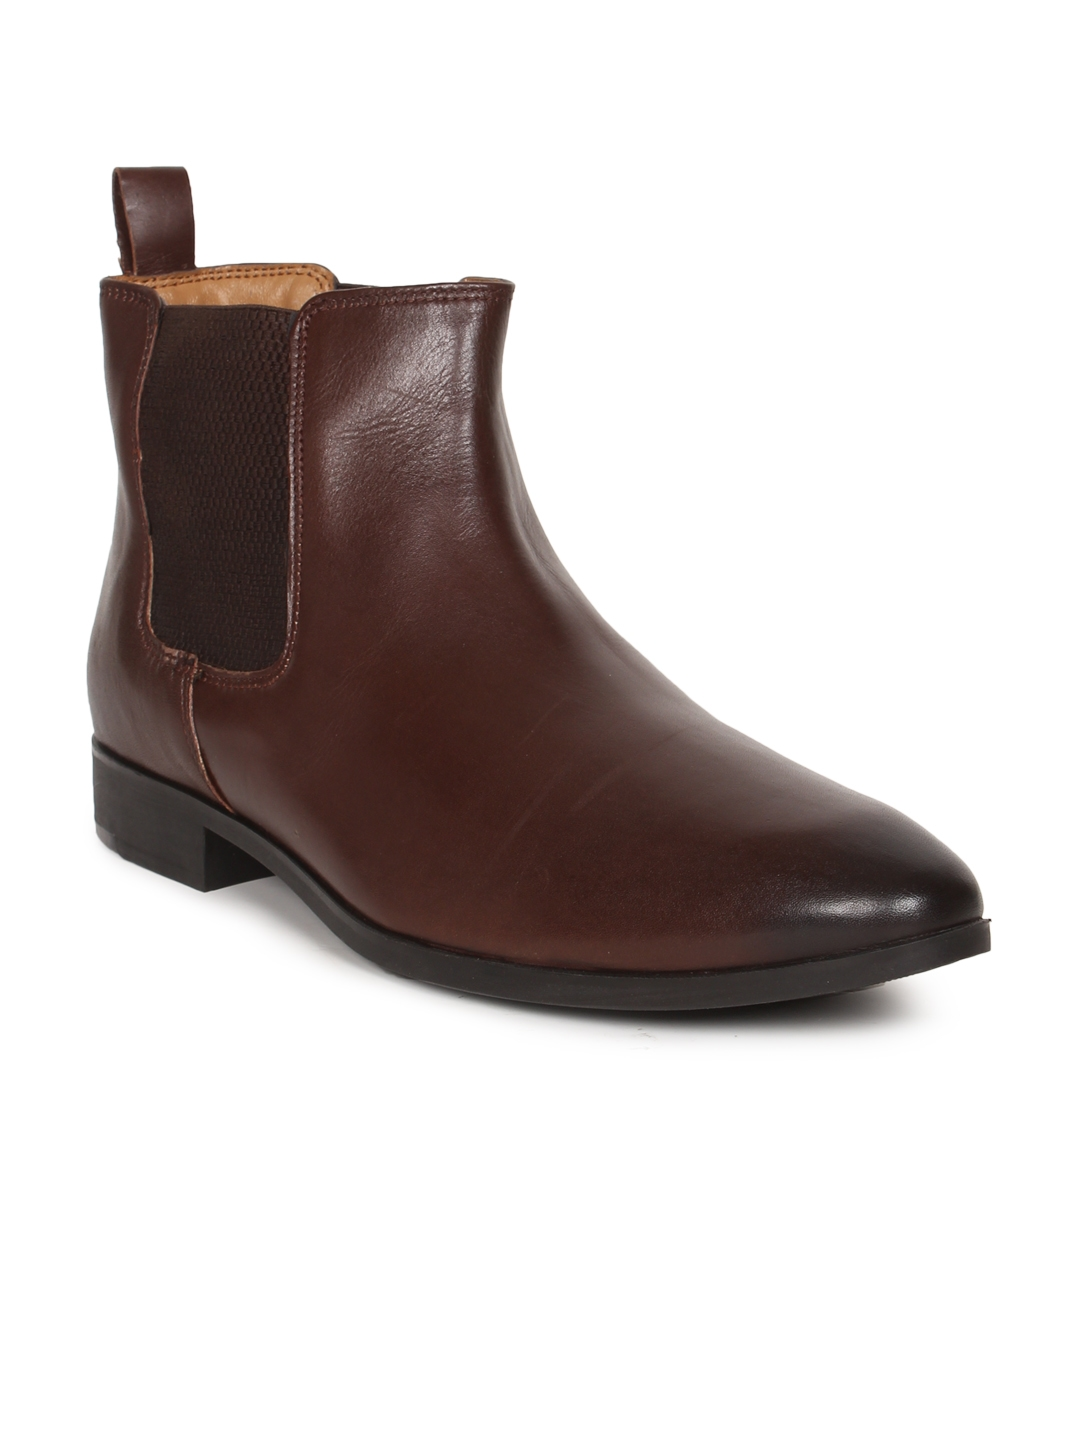 8a9be709fe Buy Van Heusen Men Brown Formal Chelsea Boots - Formal Shoes for Men ...